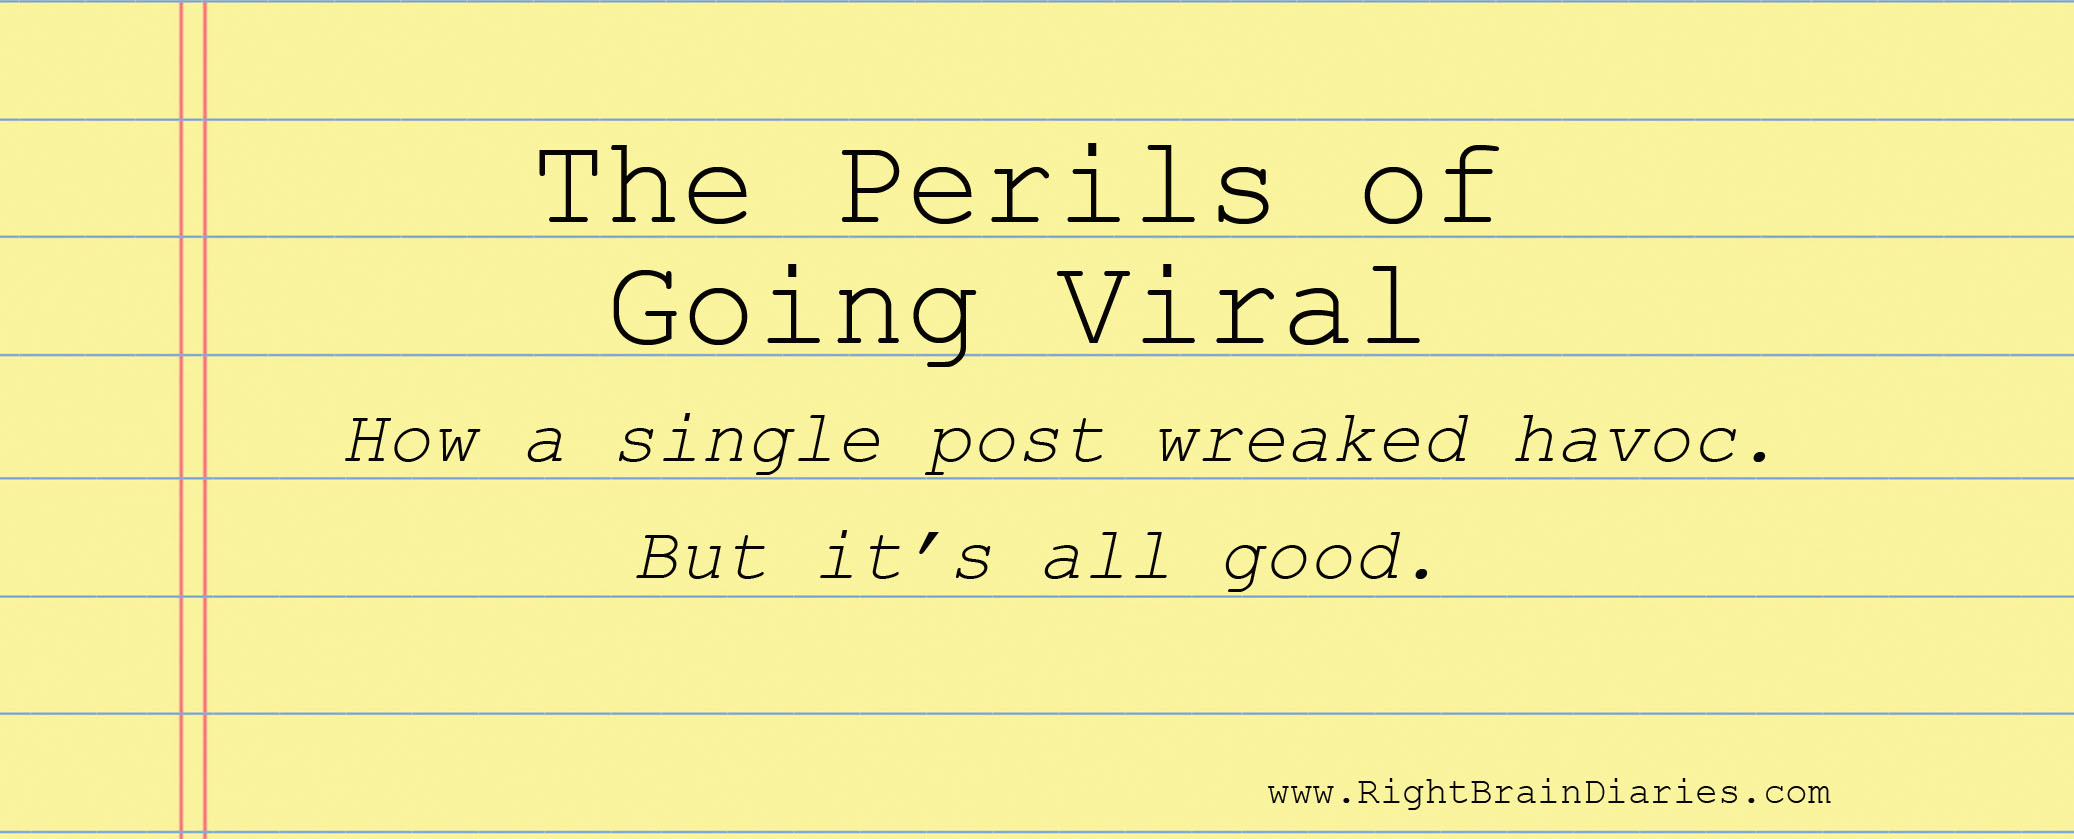 The perils of going viral.